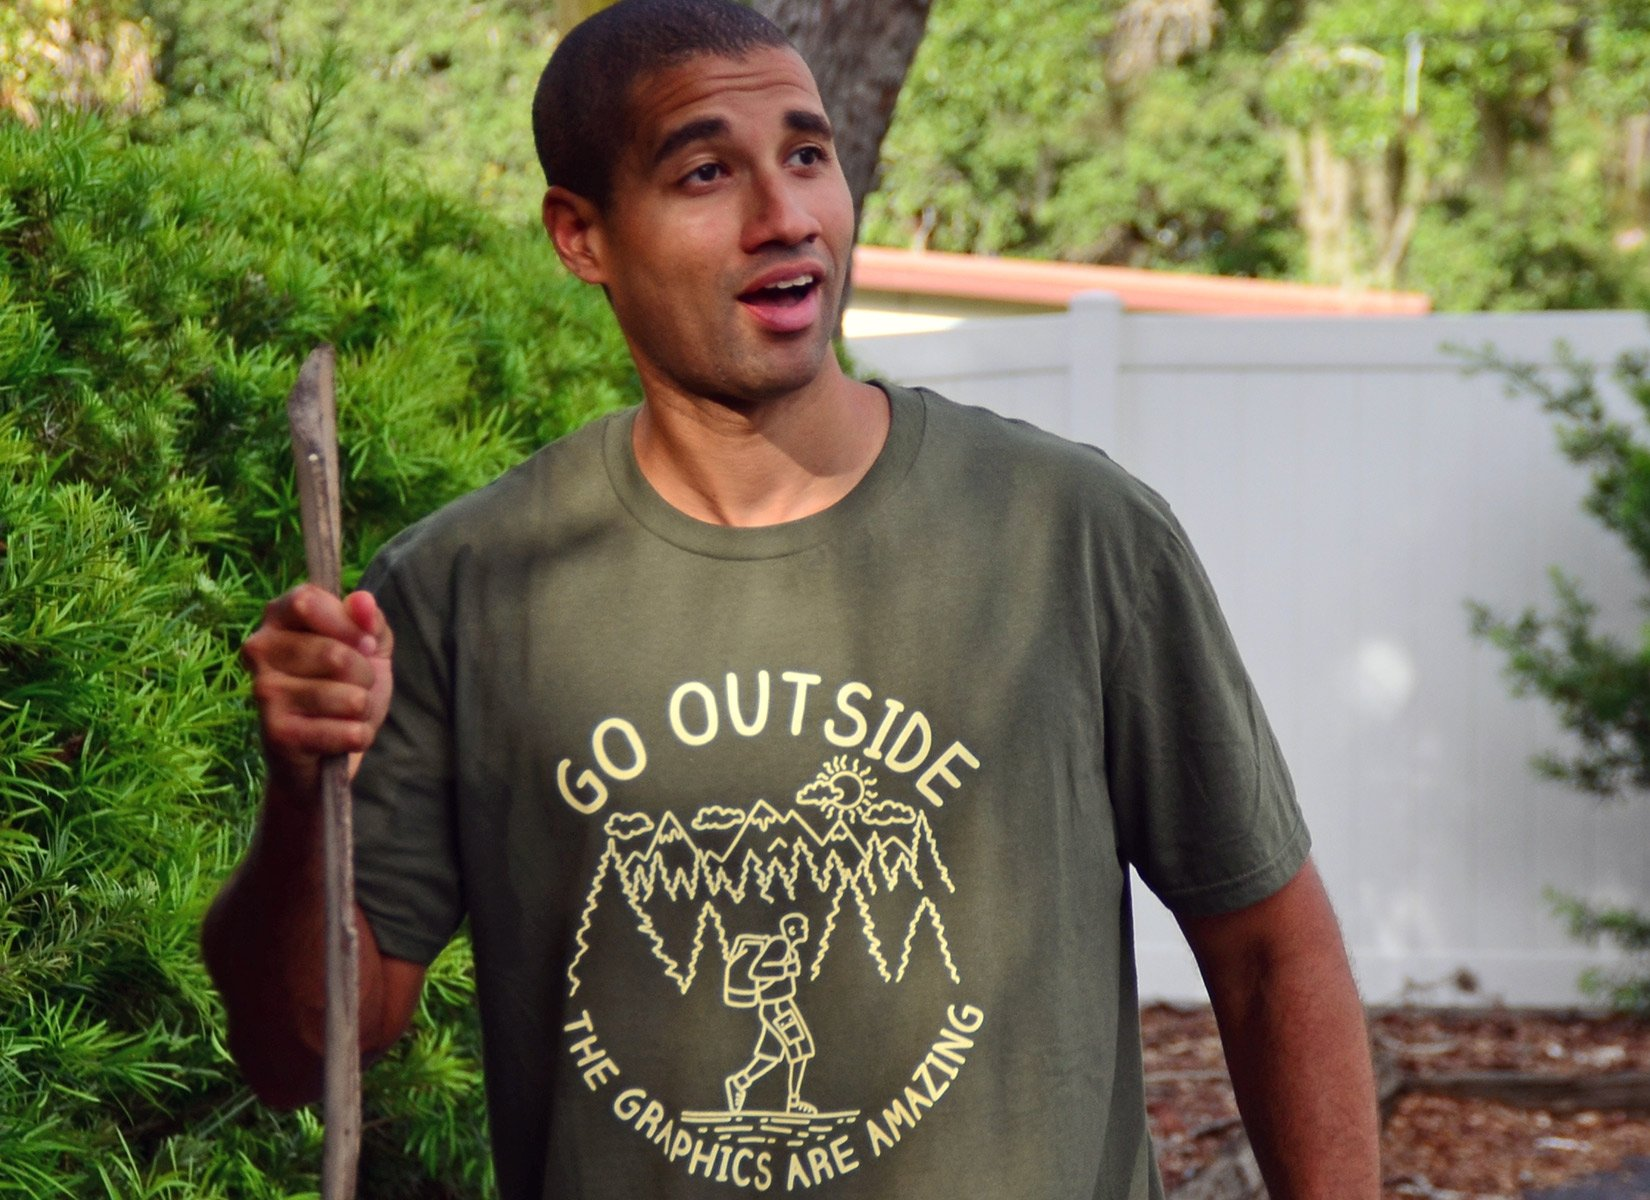 Go Outside The Graphics Are Amazing on Mens T-Shirt